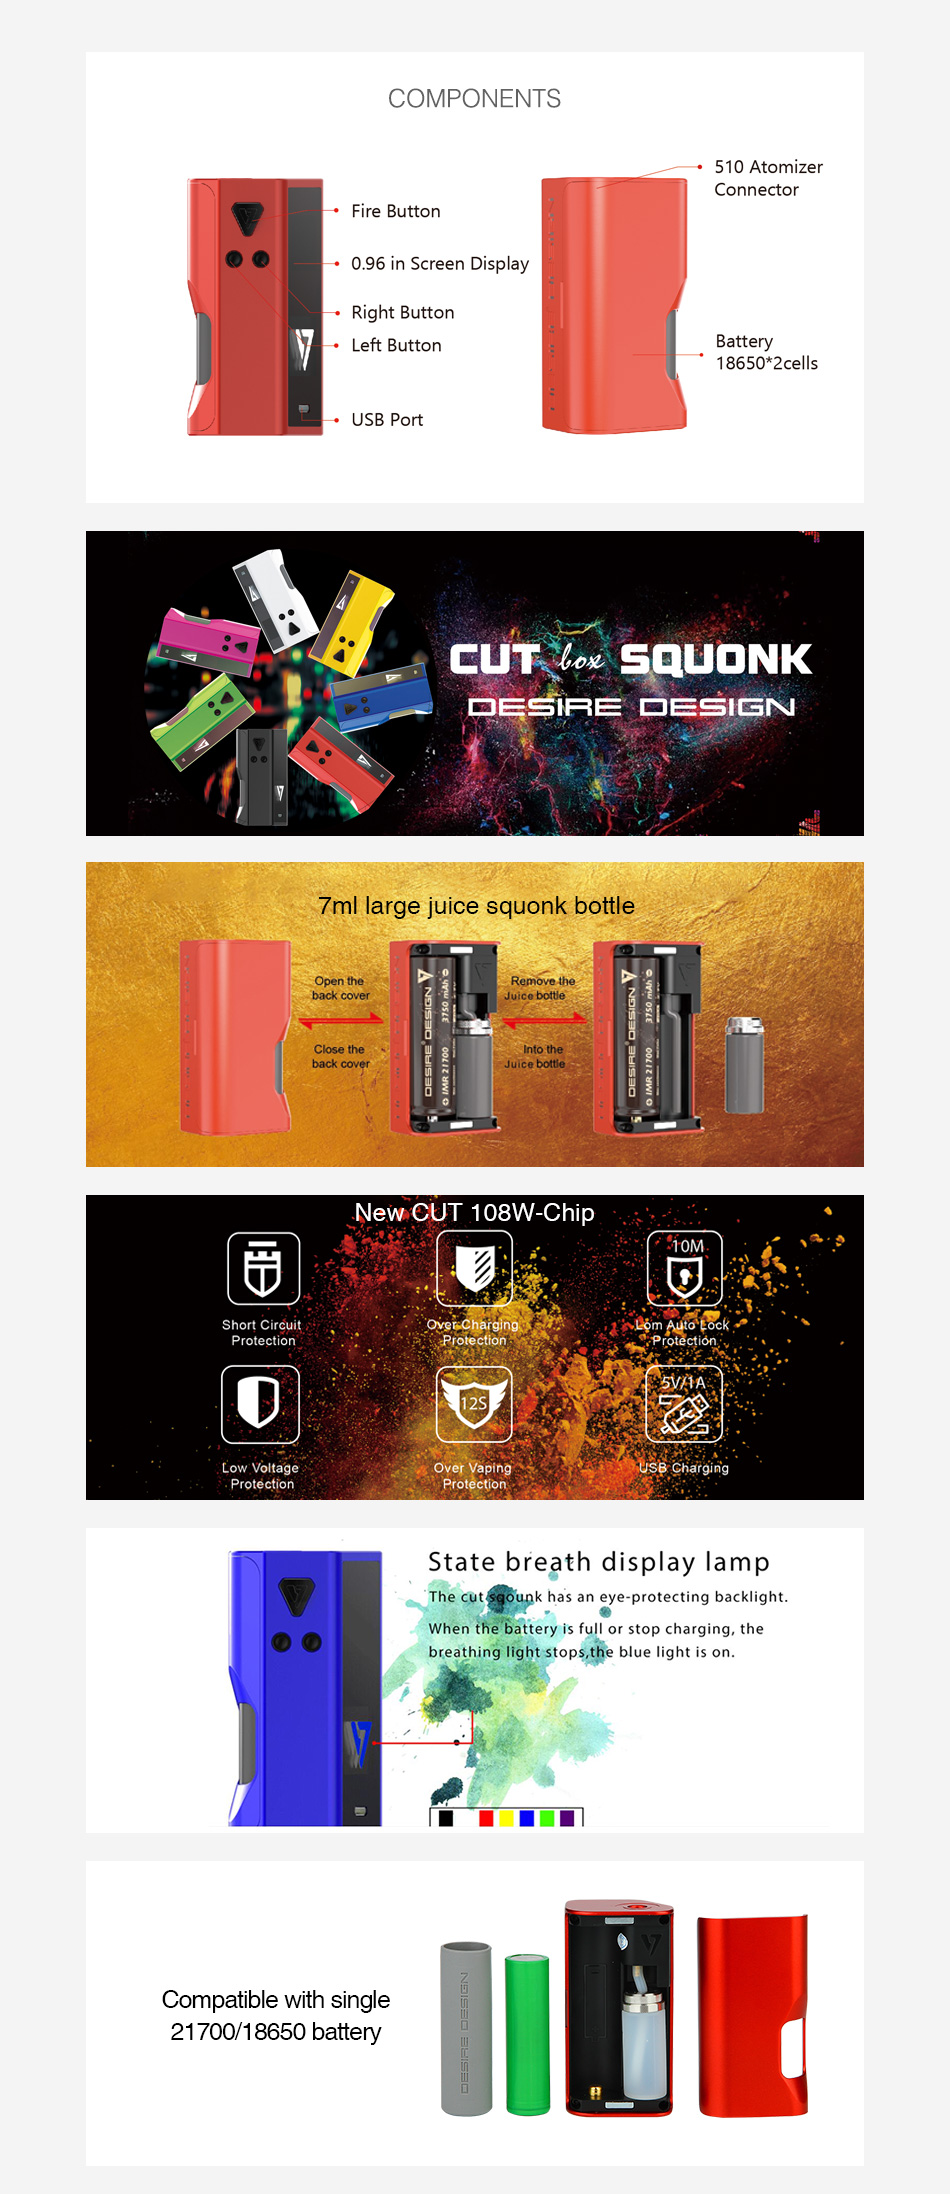 Free Sample Desire Design Cut Squonk Zinc Alloy 5~108W 1x18650/21700 7ml Authentic Desire Cut TC VW Variable Watt Squonk Box Mod